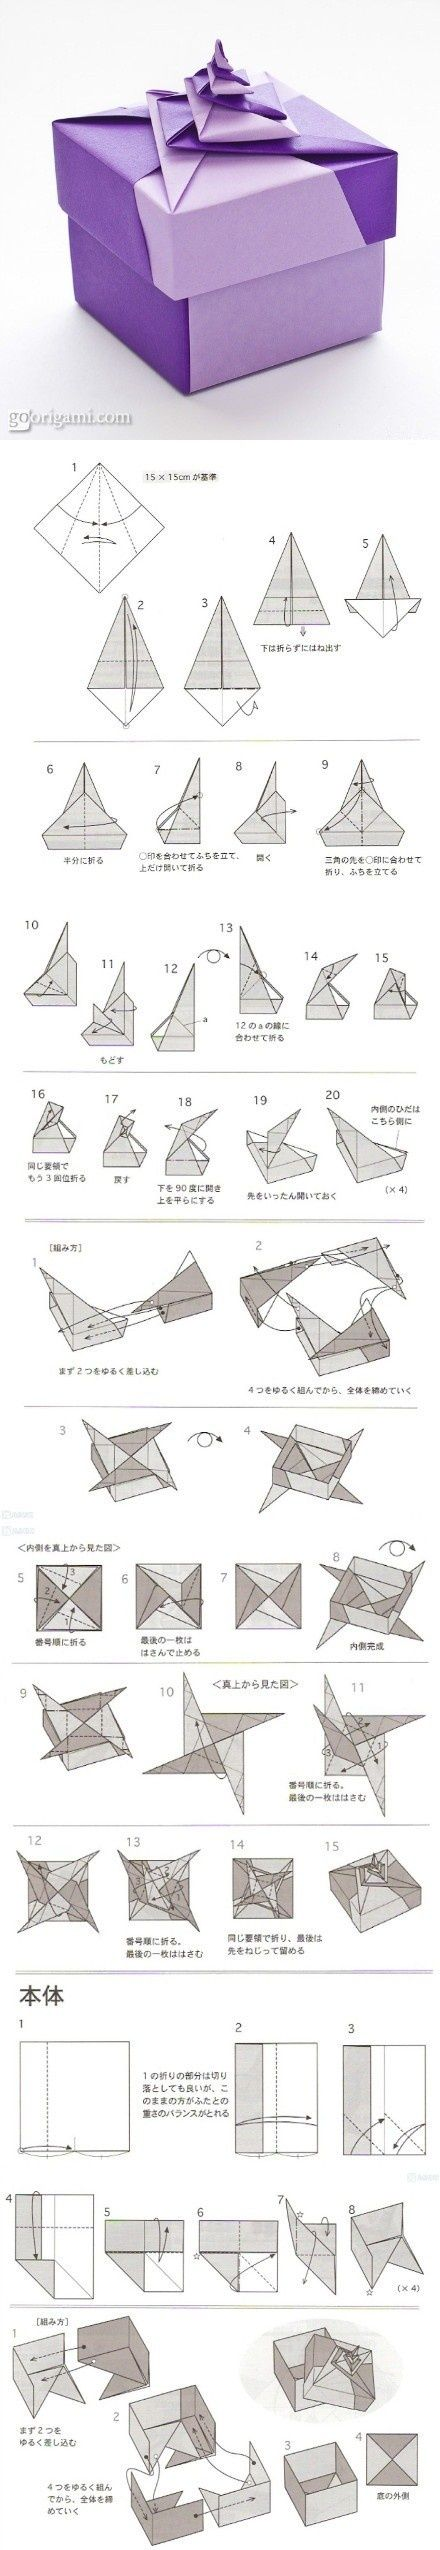 2004 ford ranger fuse box diagram acc fuse tomoko fuse spiral diagram 87 best images about origami on pinterest | dollar bills, papercraft and fireflies #15